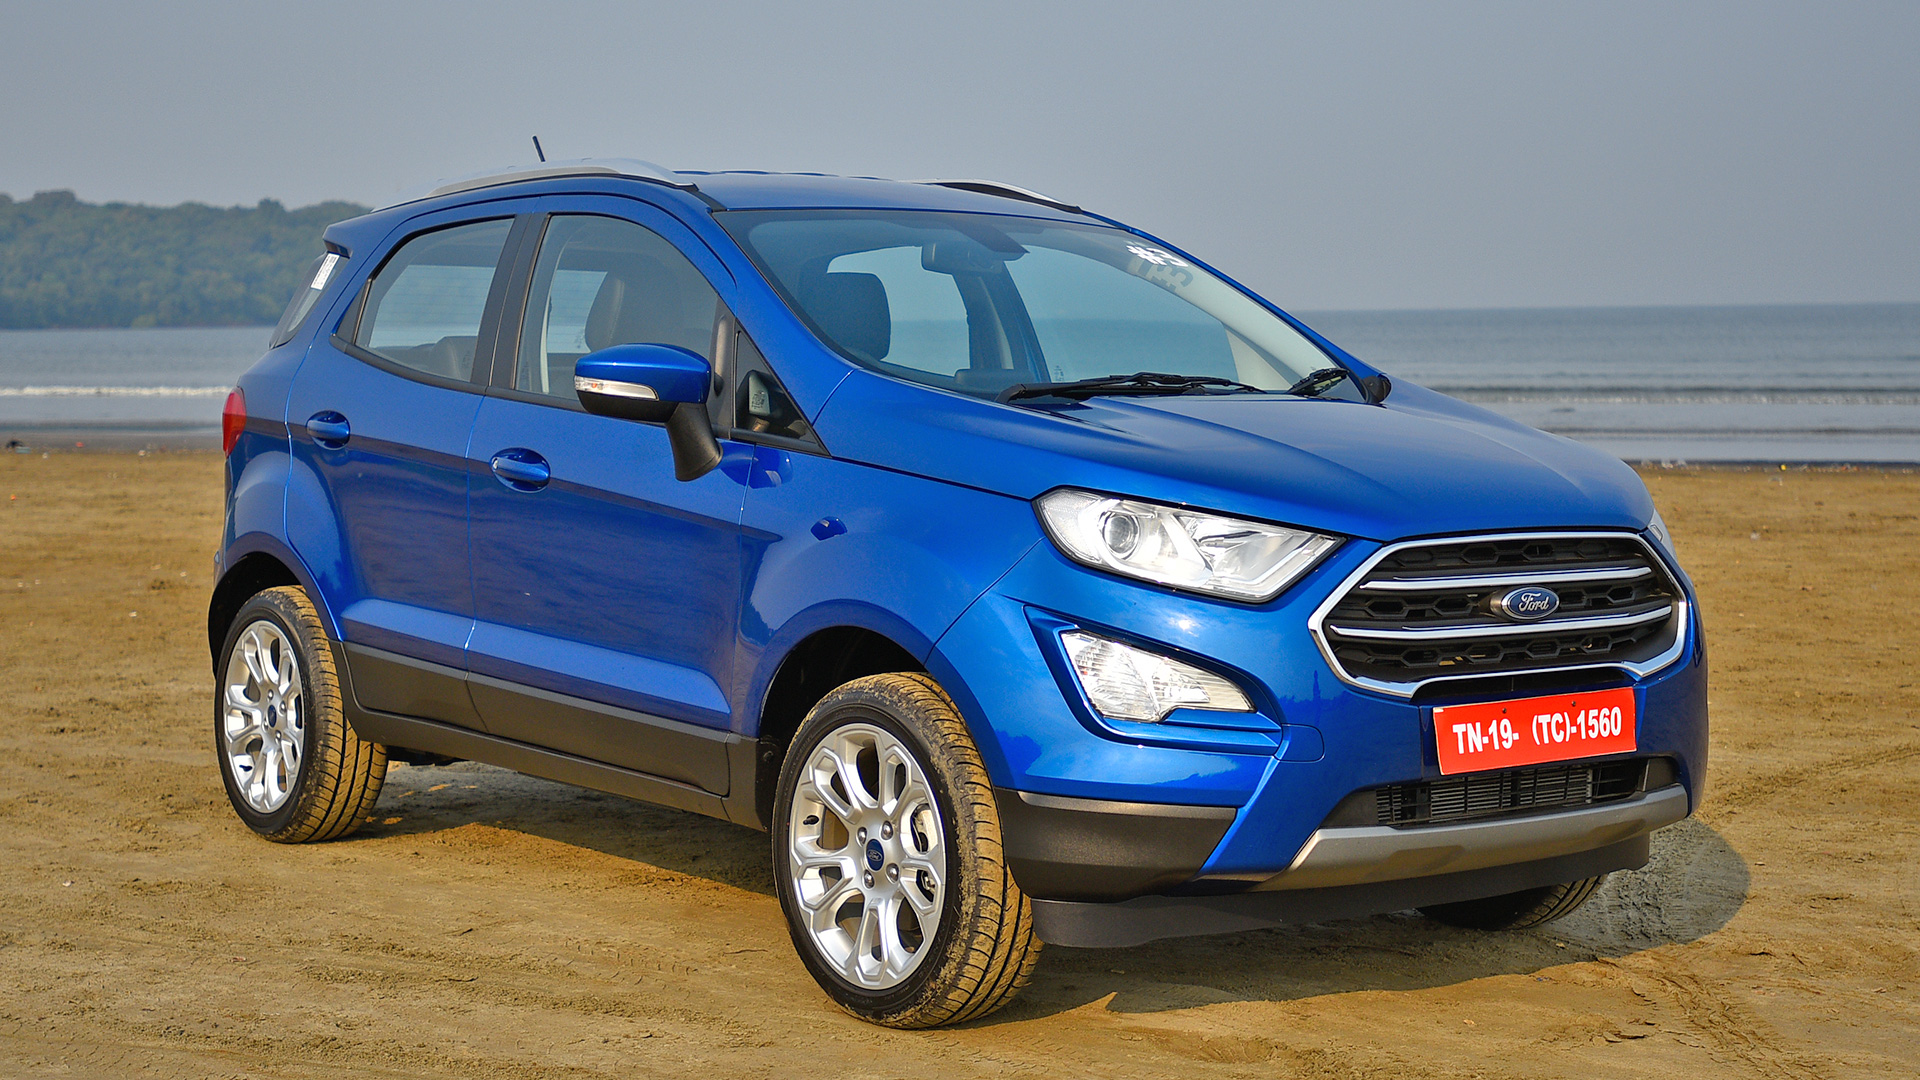 ford ecosport 2018 1 5 diesel titanium price mileage reviews specification gallery overdrive. Black Bedroom Furniture Sets. Home Design Ideas